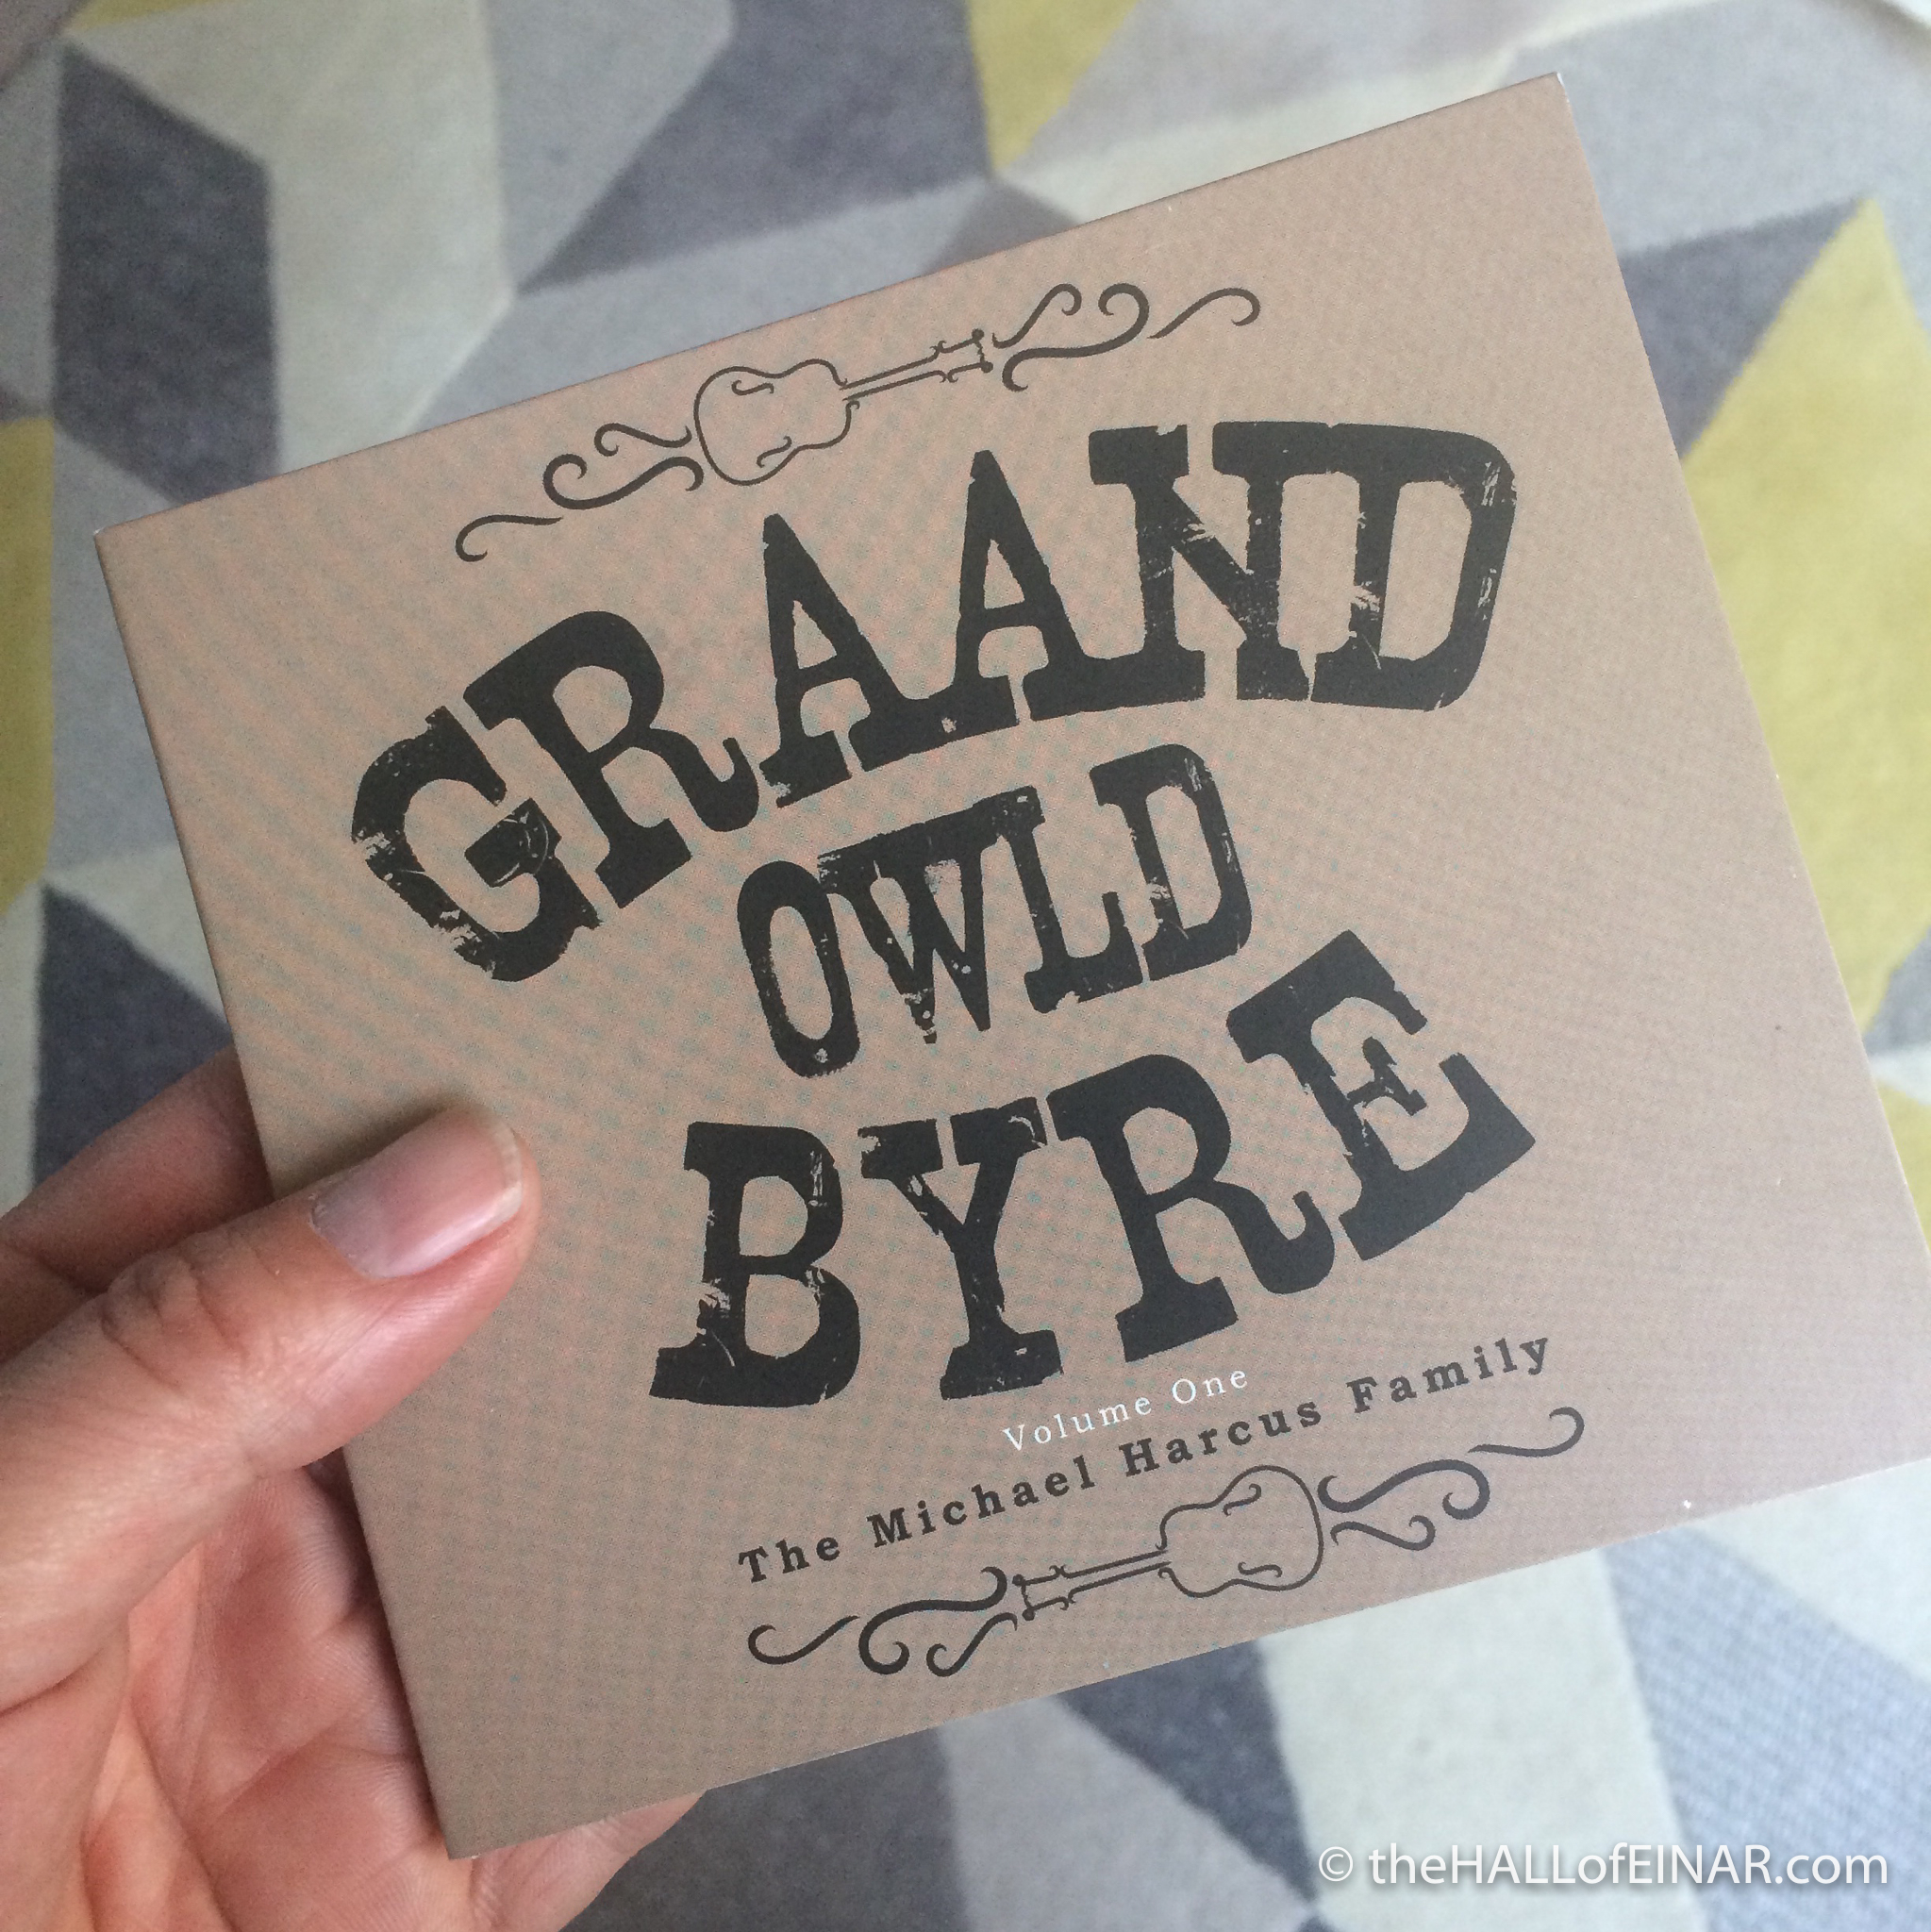 Graand Owld Byre - The Hall of Einar